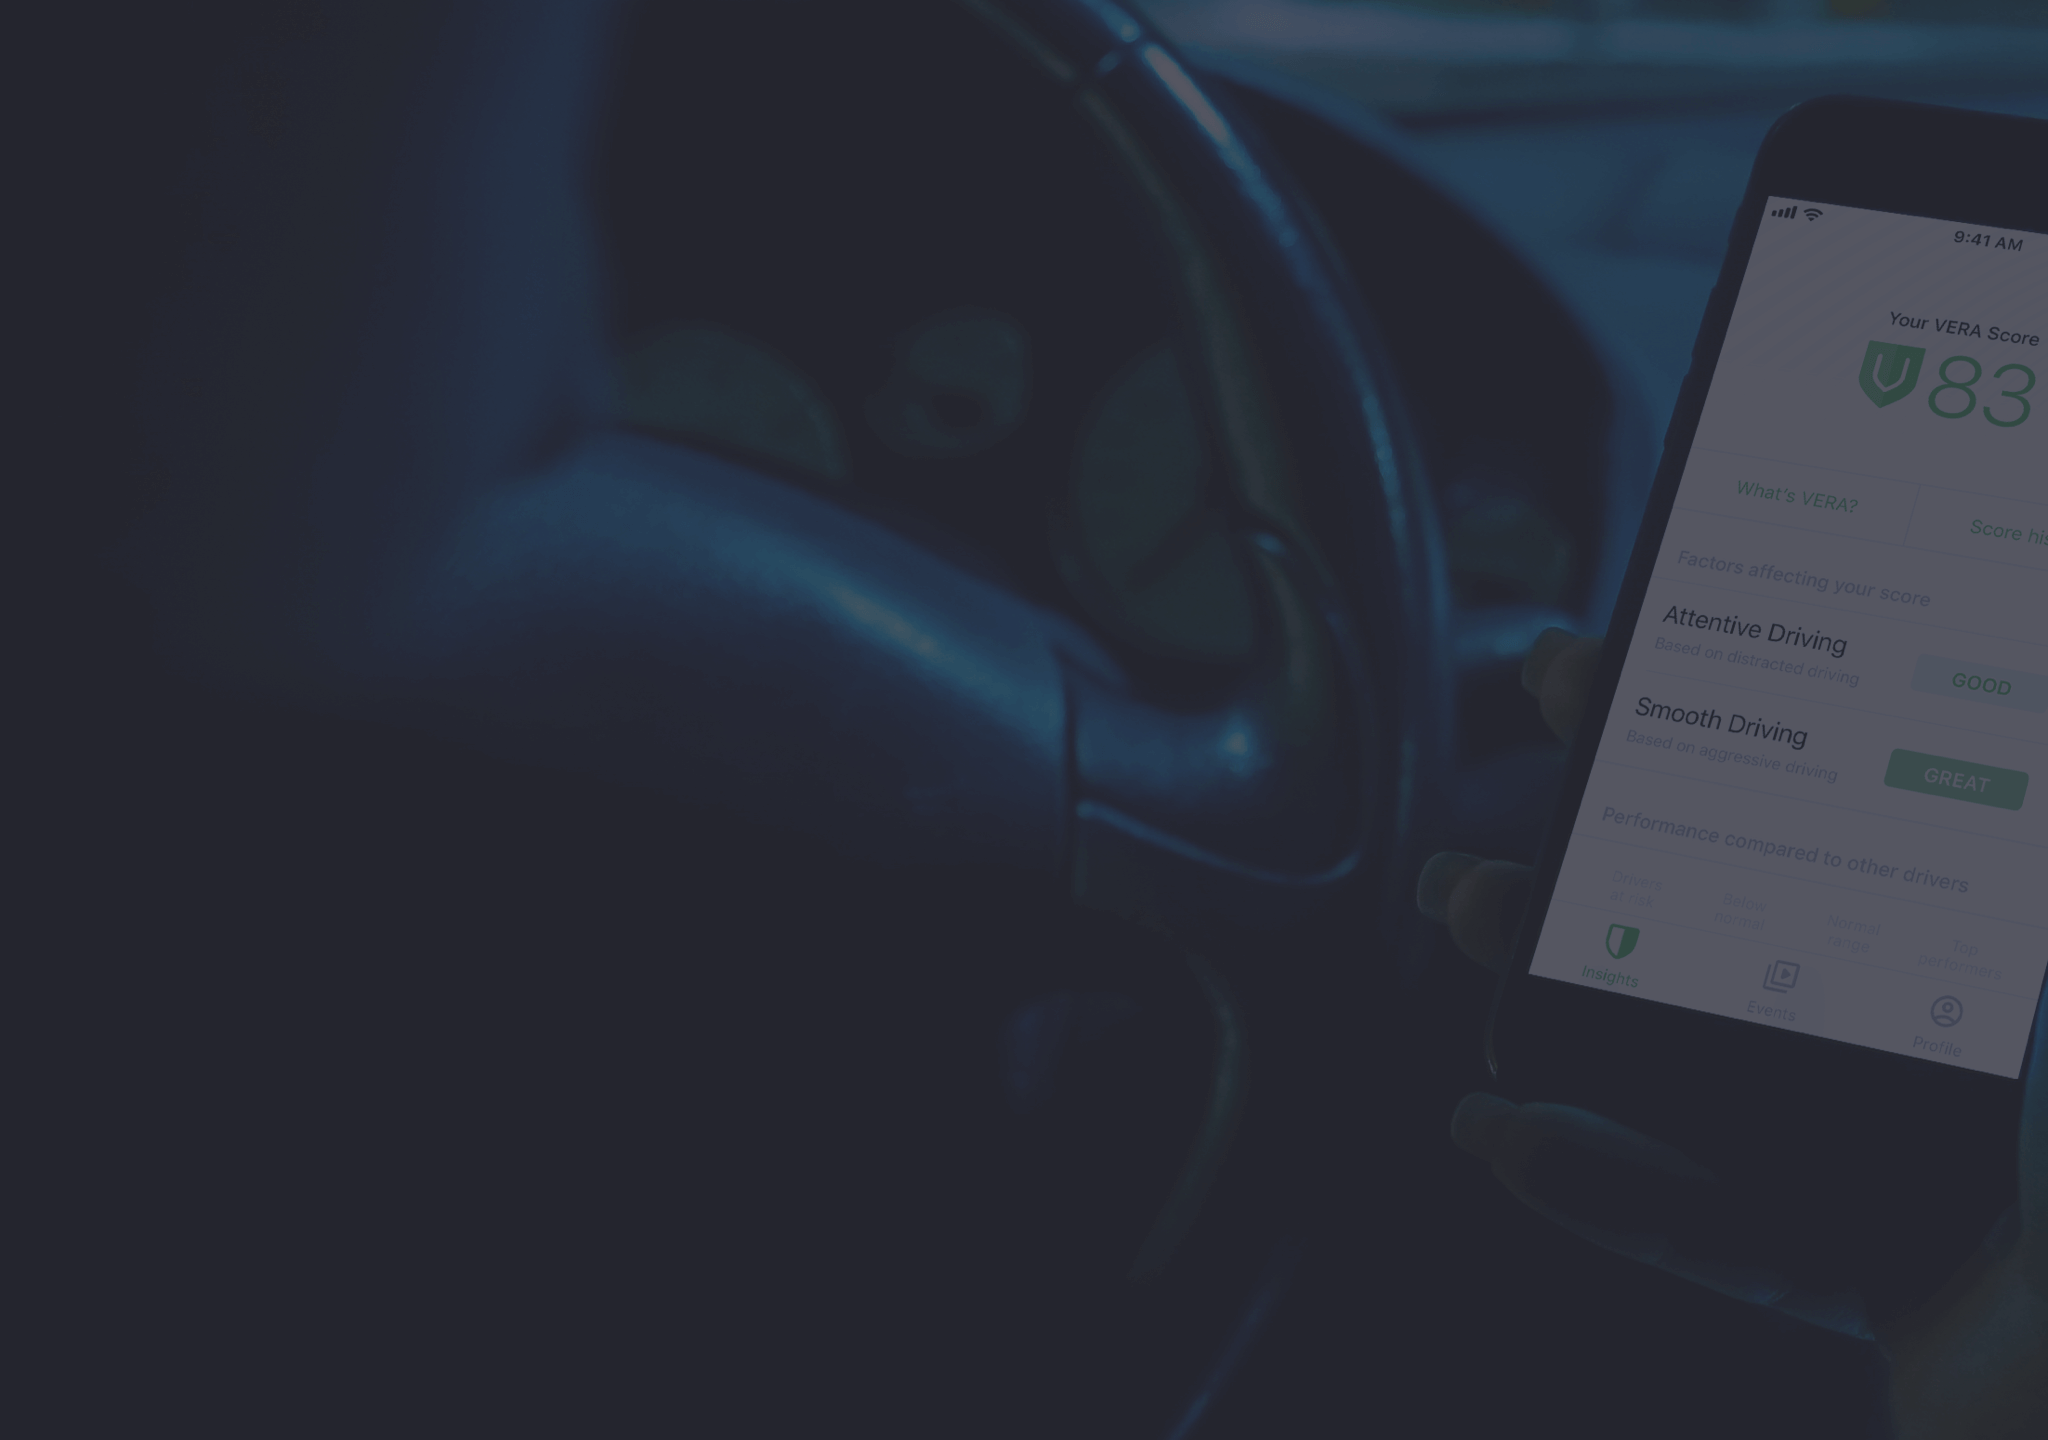 Photo of a driver in a car holding a mobile phone showing the Nauto mobile app